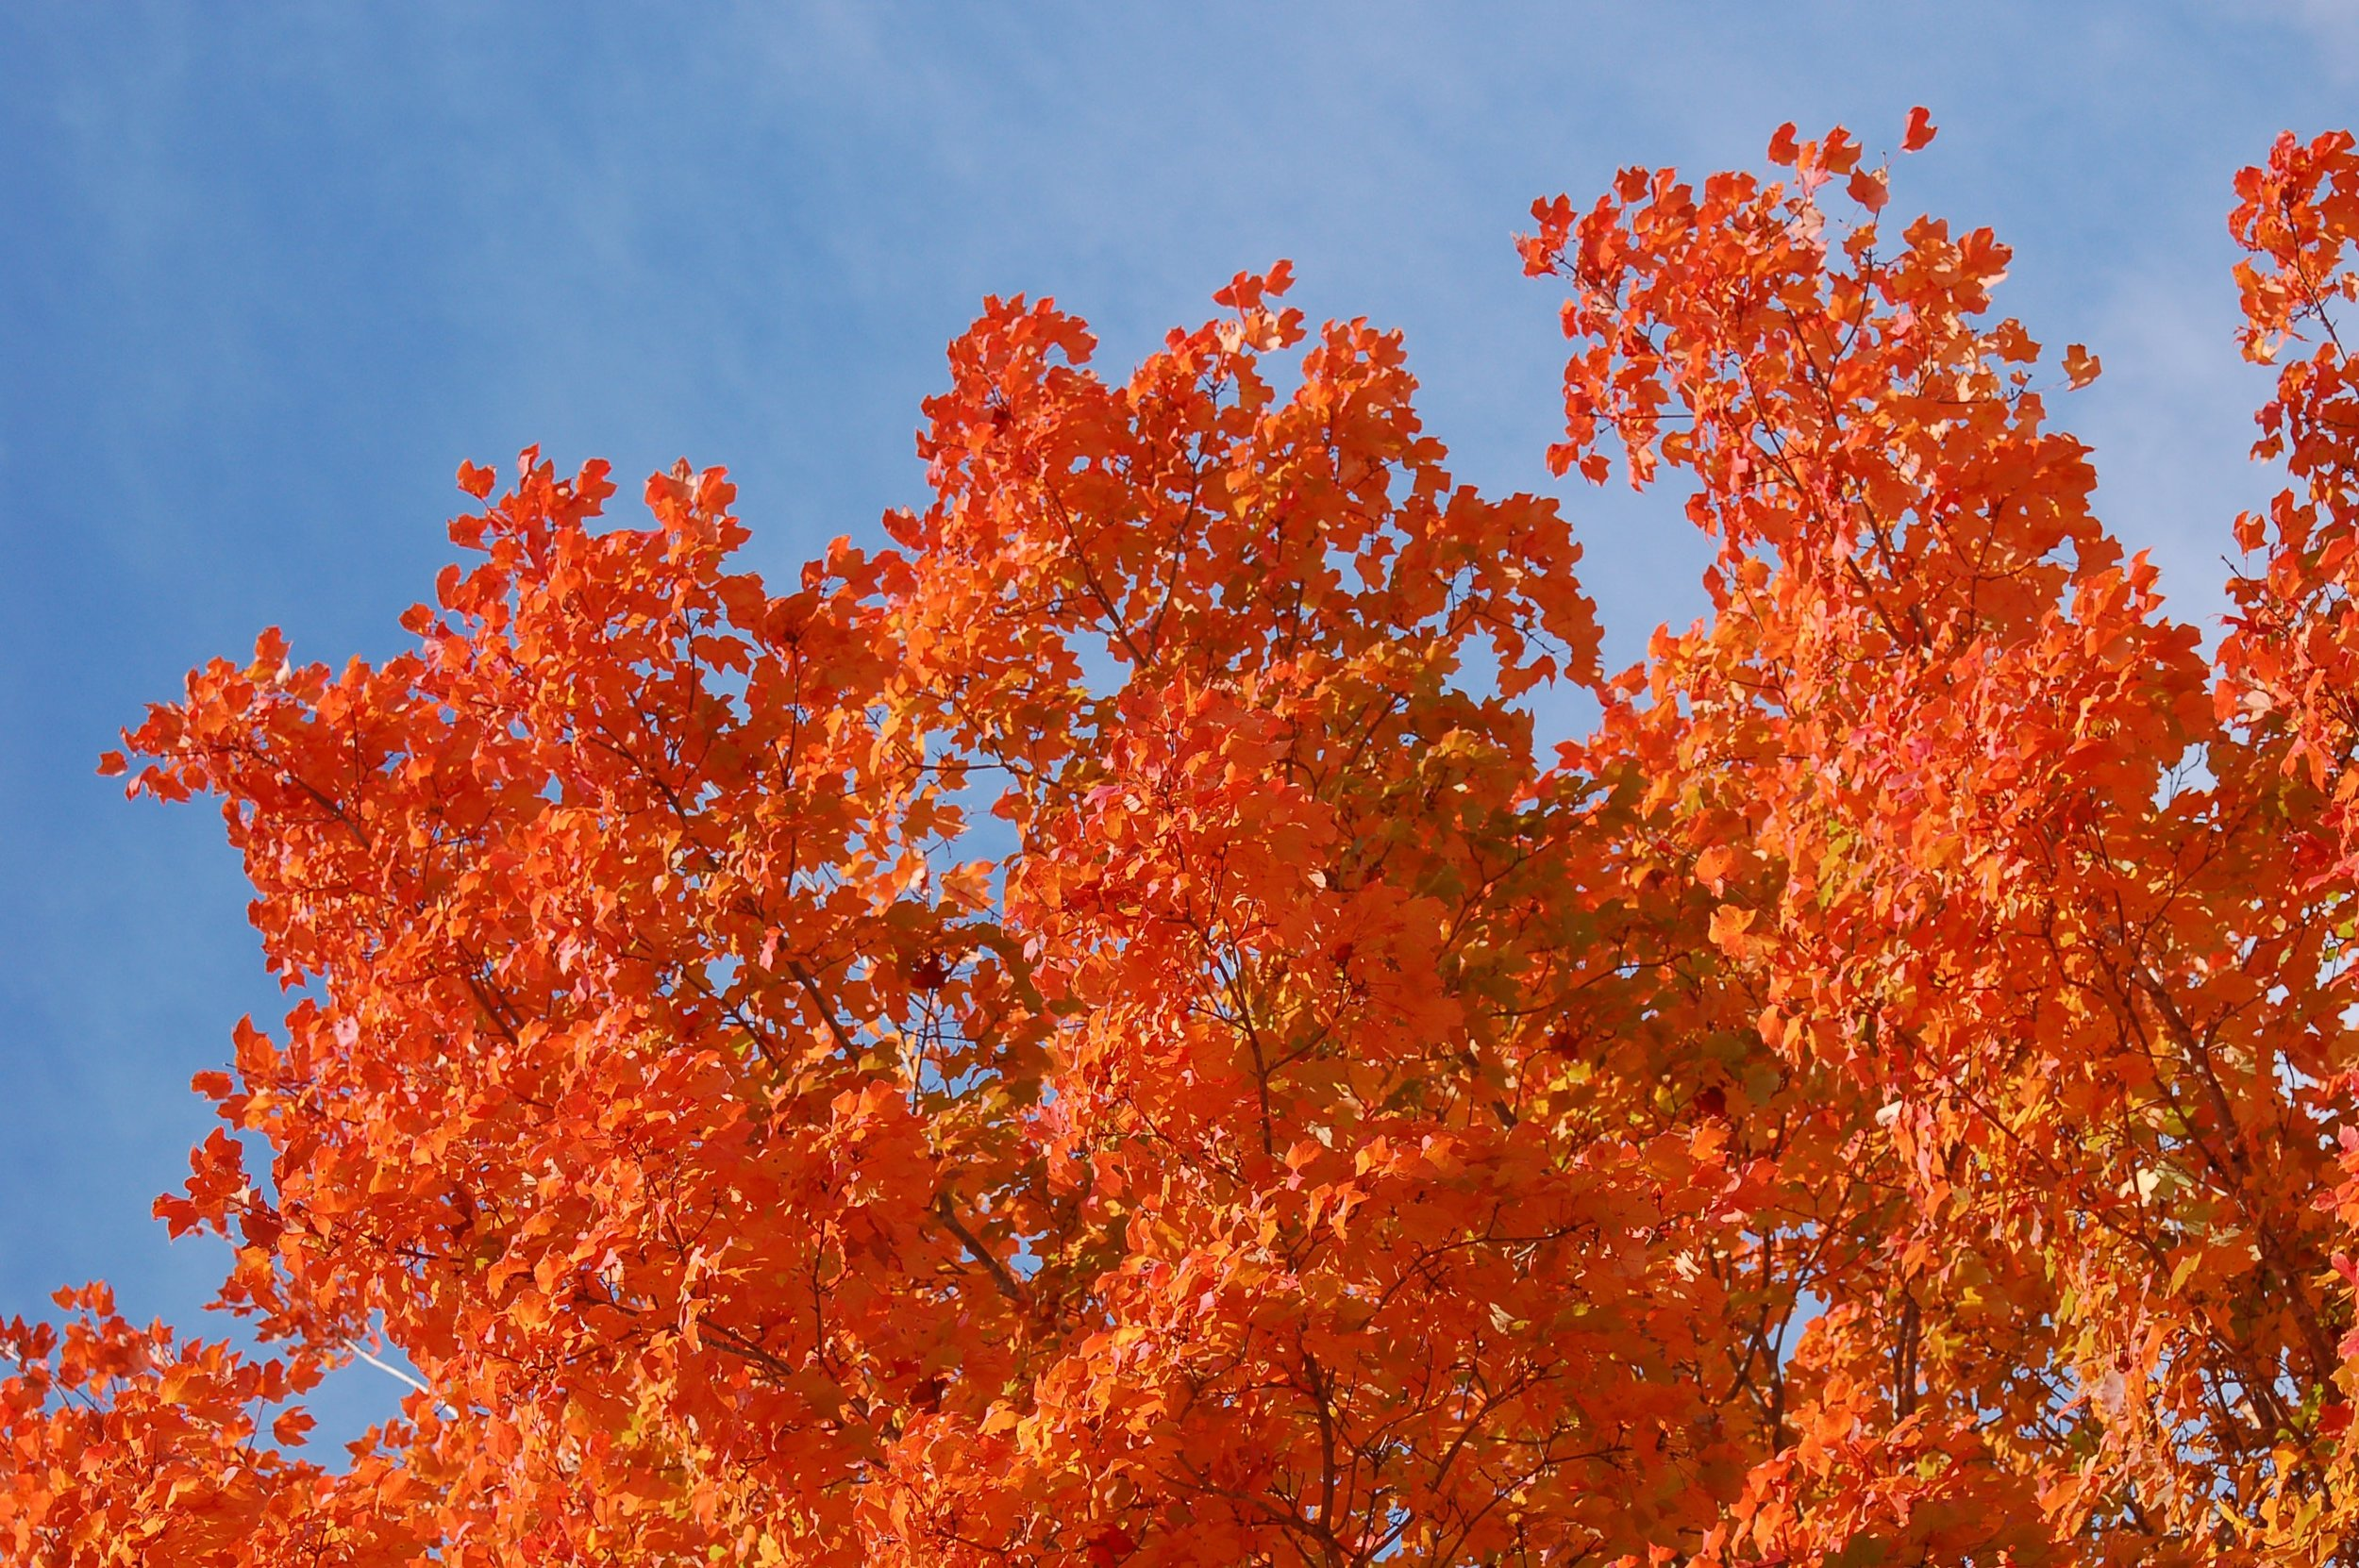 Harvest-Moon-Sugar-Maple-Acer-saccharum-fall-color-foliage-3.jpg